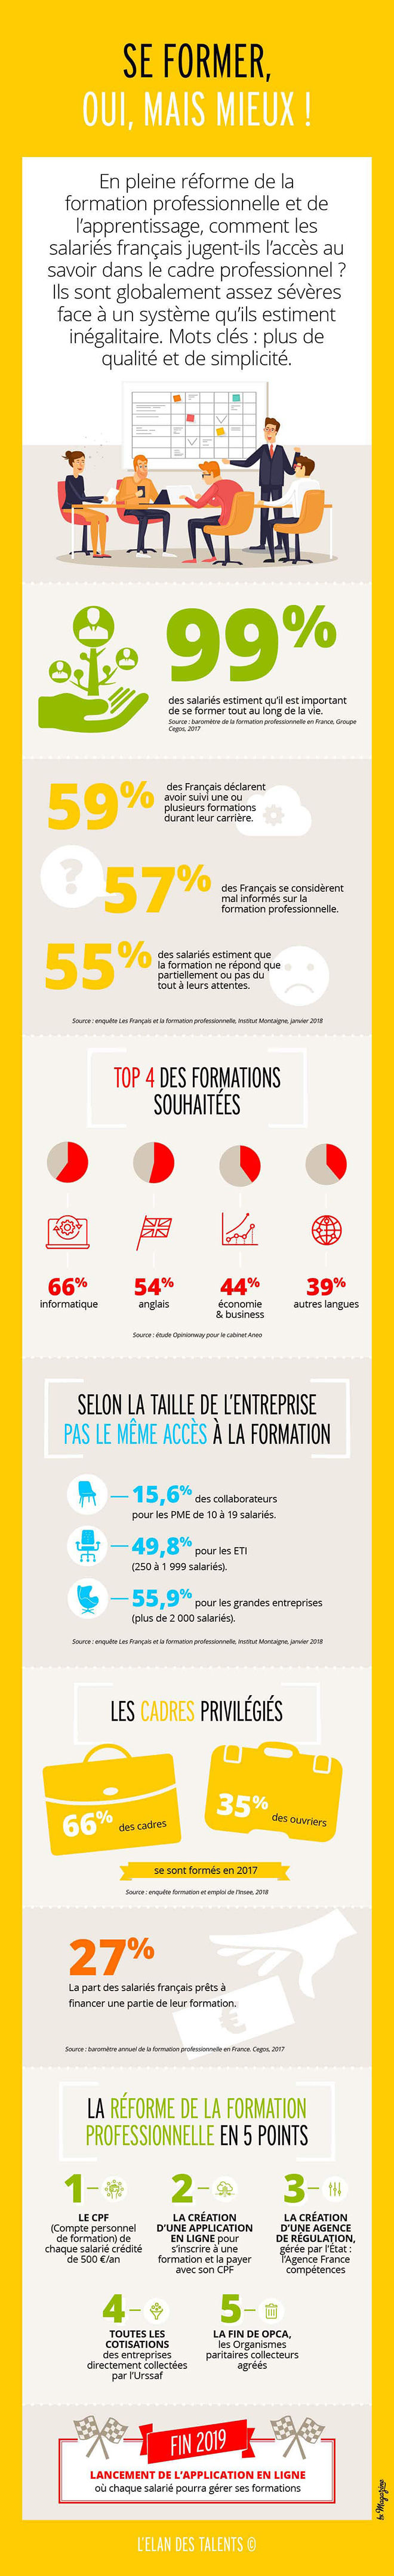 Formation professionnelle : infographie elan